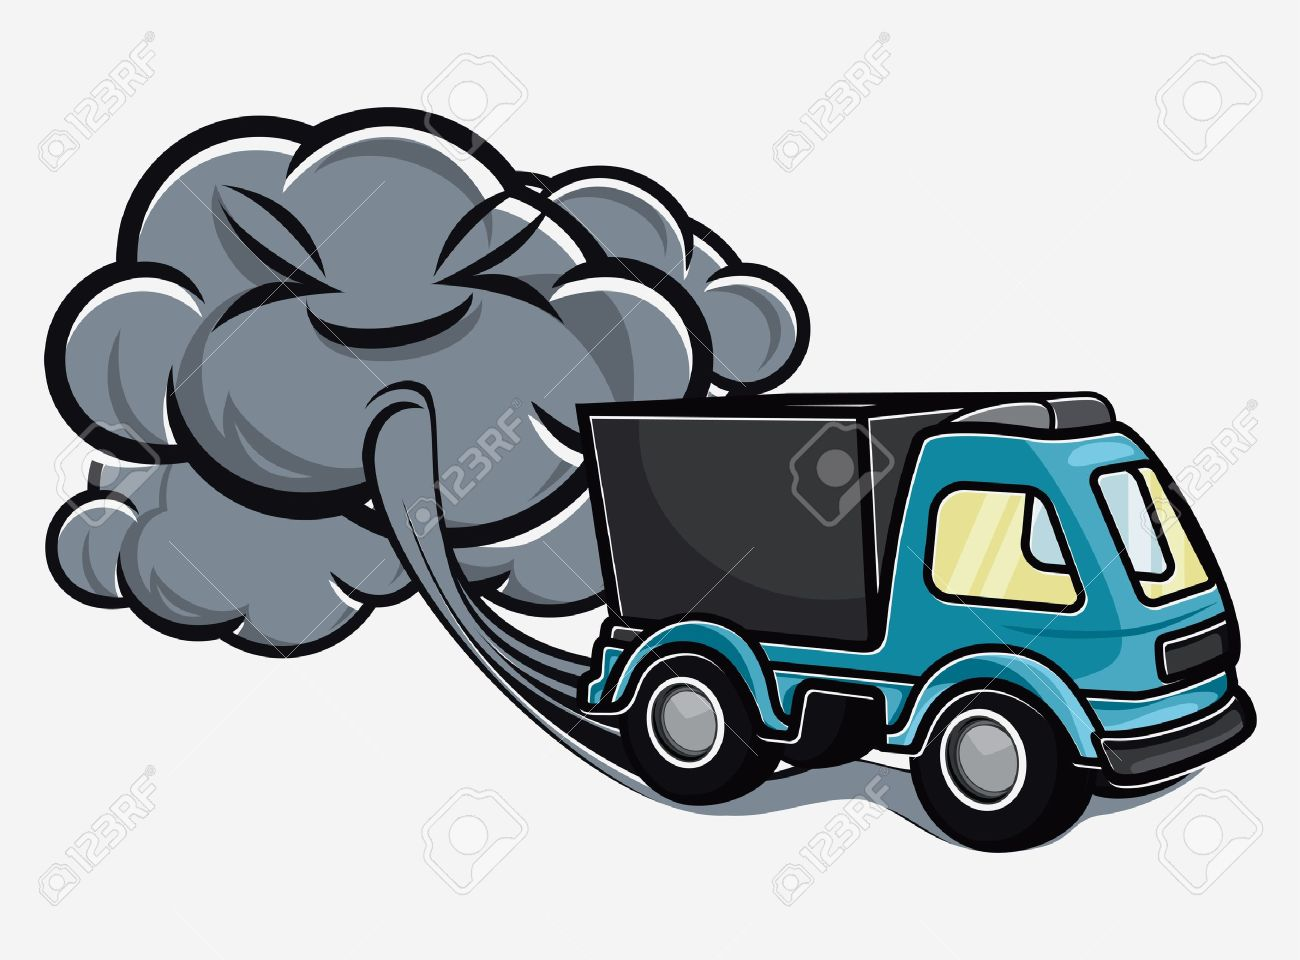 Air Exhaust Clipart on Car Pipe Exhaust Fumes